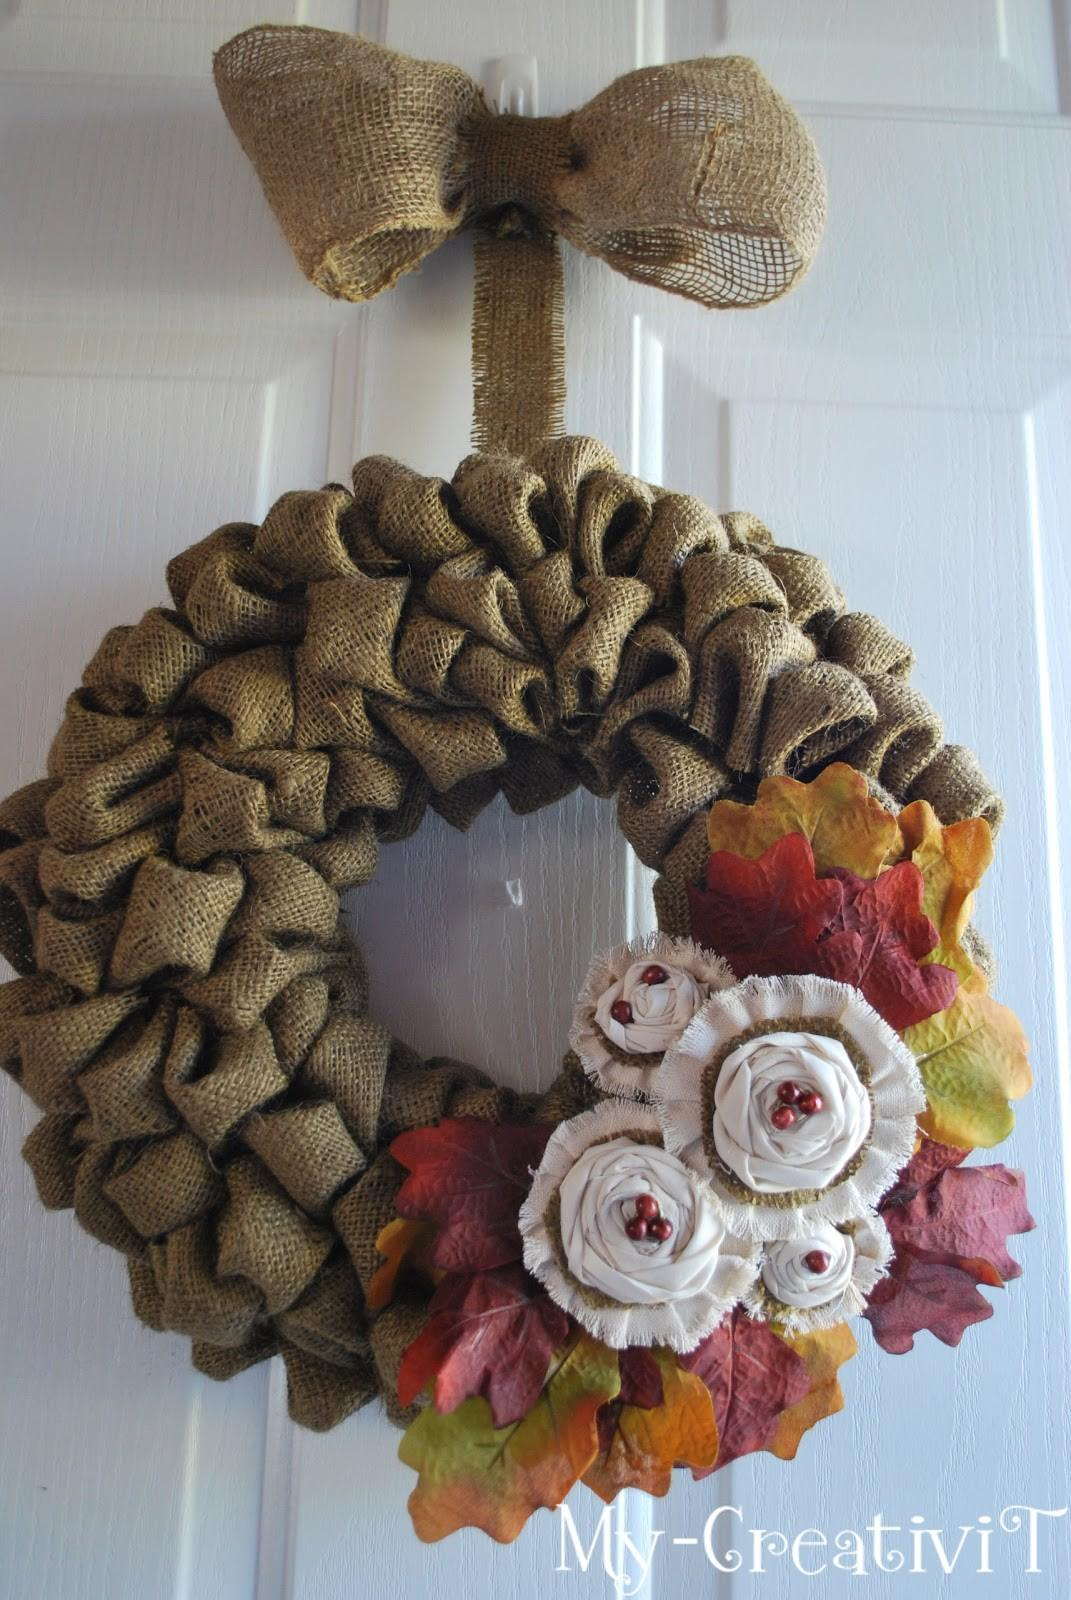 Creativit Diy Burlap Wreath